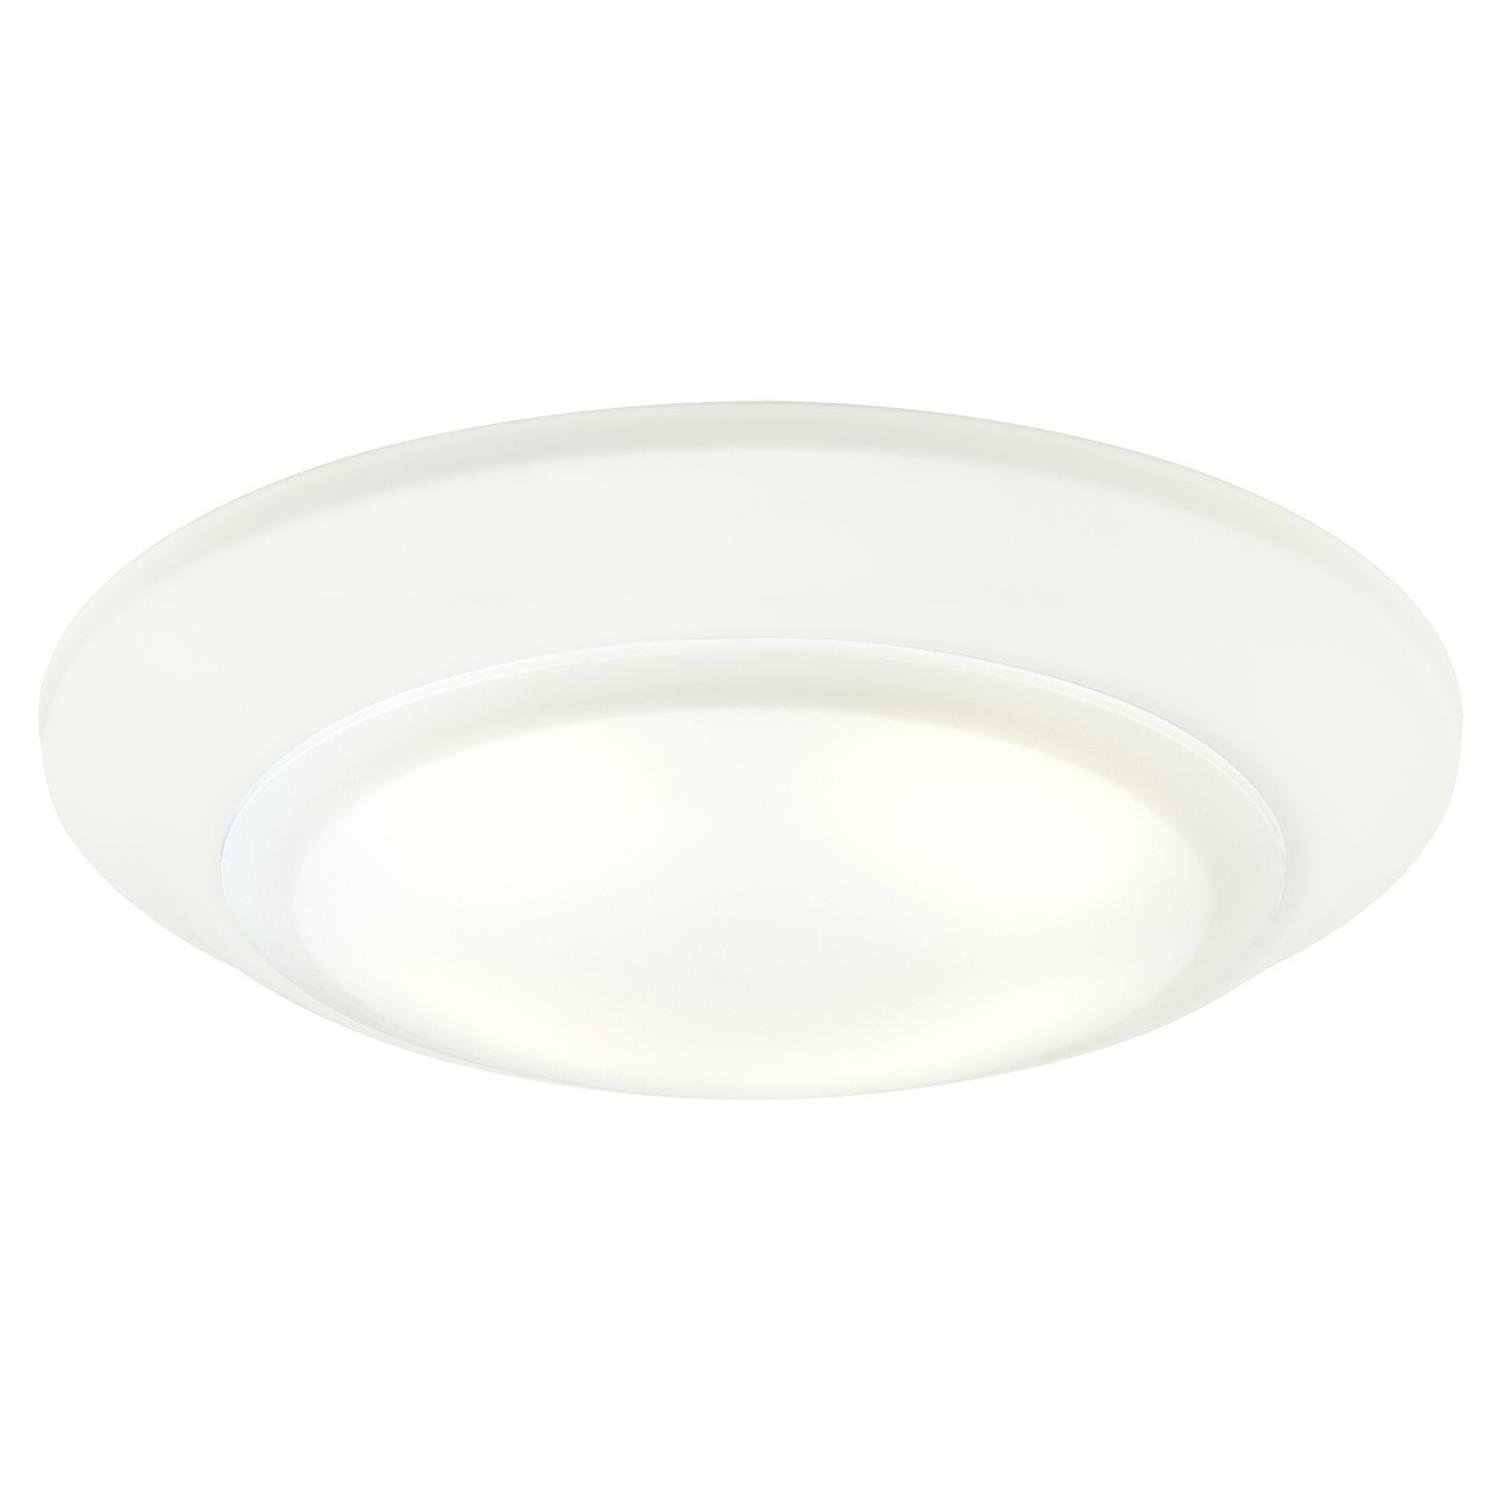 Westinghouse Lighting 6322900 Large LED Indoor/Outdoor Dimmable Surface Mount Wet Location, White Finish with Frosted Lens